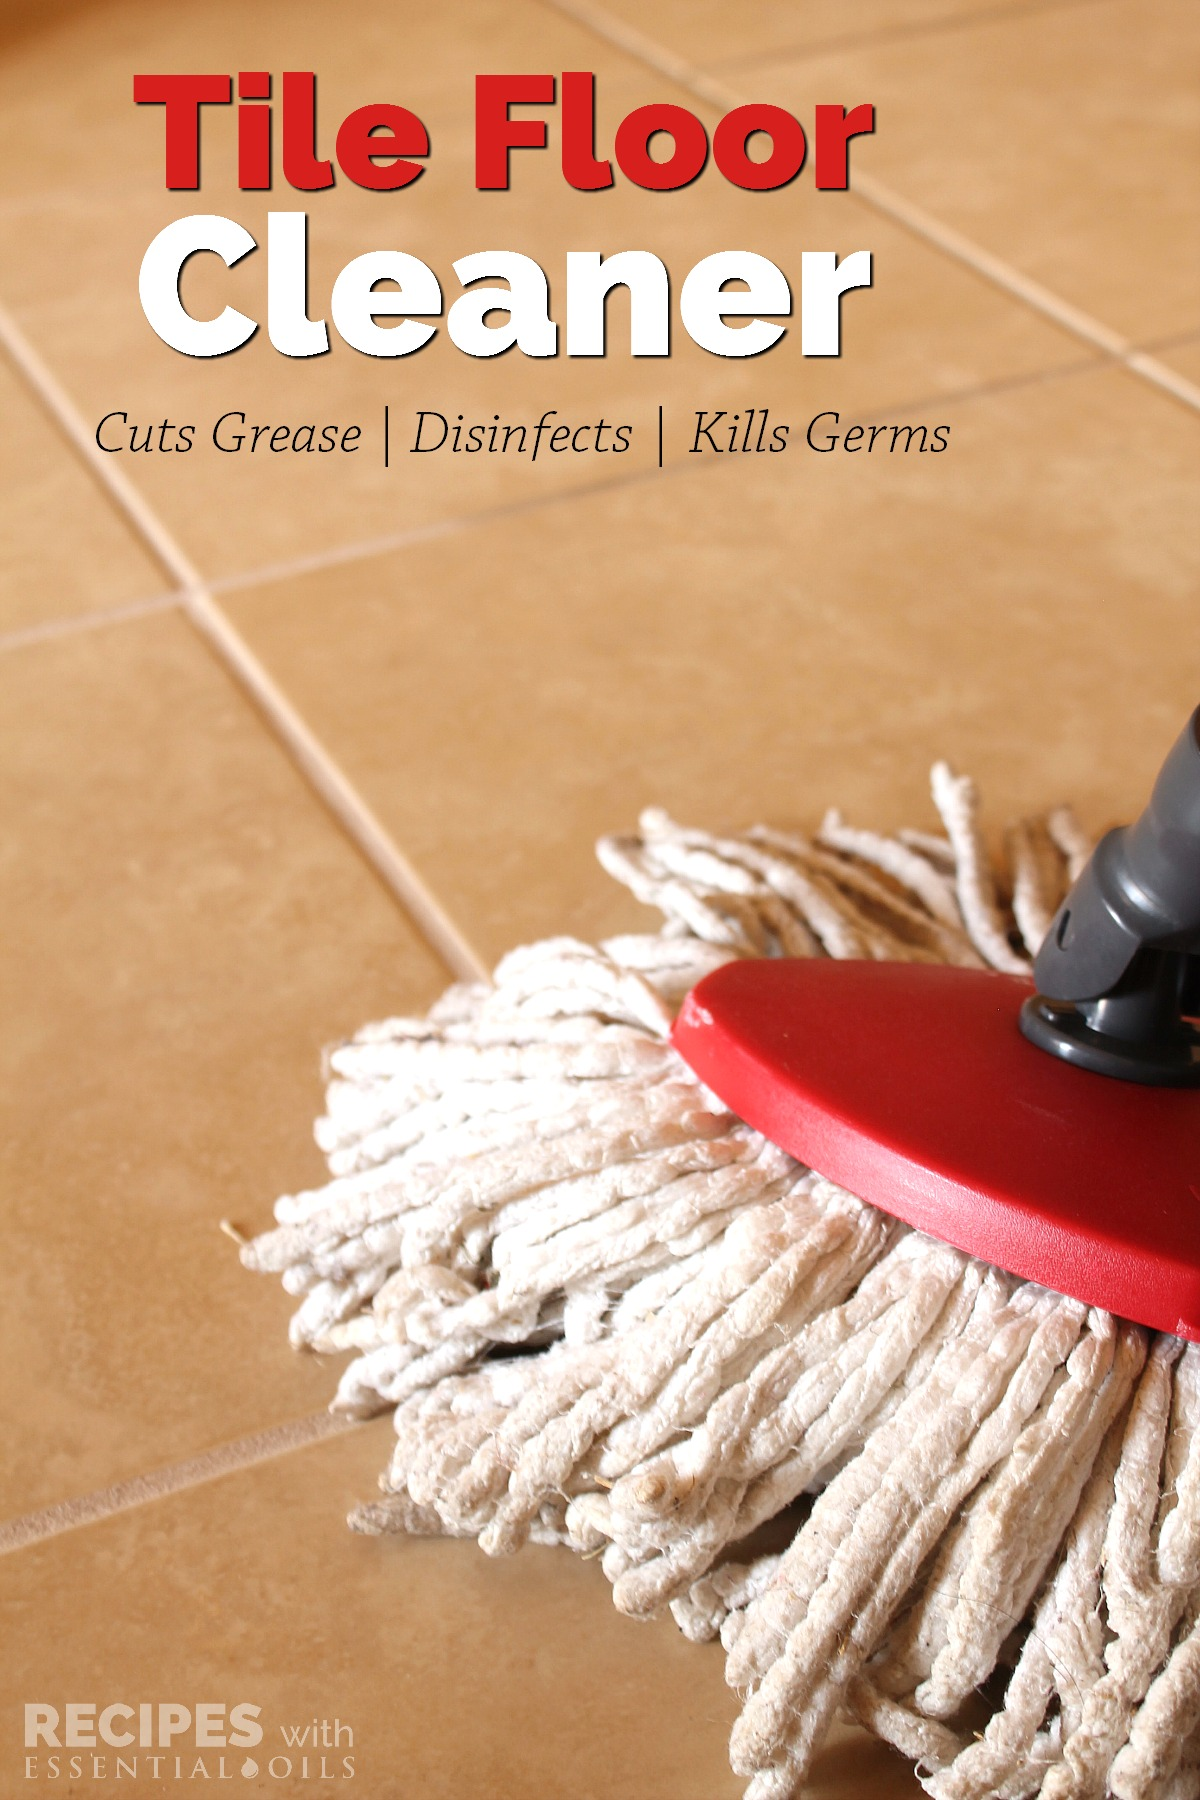 Homemade Tile Floor Cleaner Recipe  Recipes with